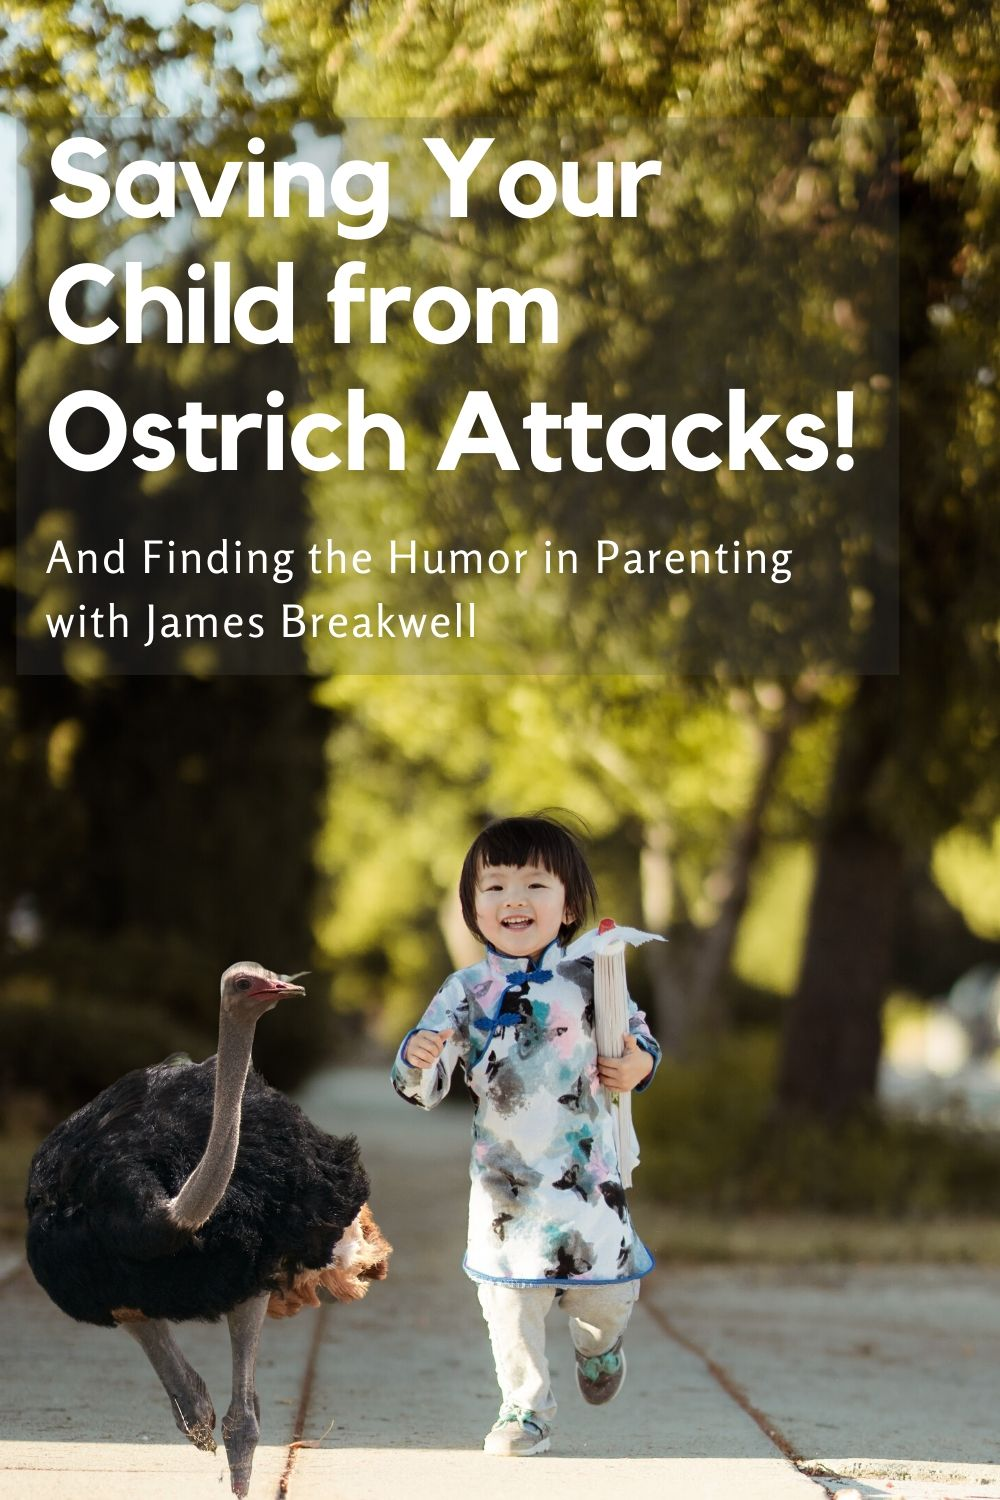 Saving Your Child from Ostrich Attacks and Finding Humor in Parenting - with James Breakwell